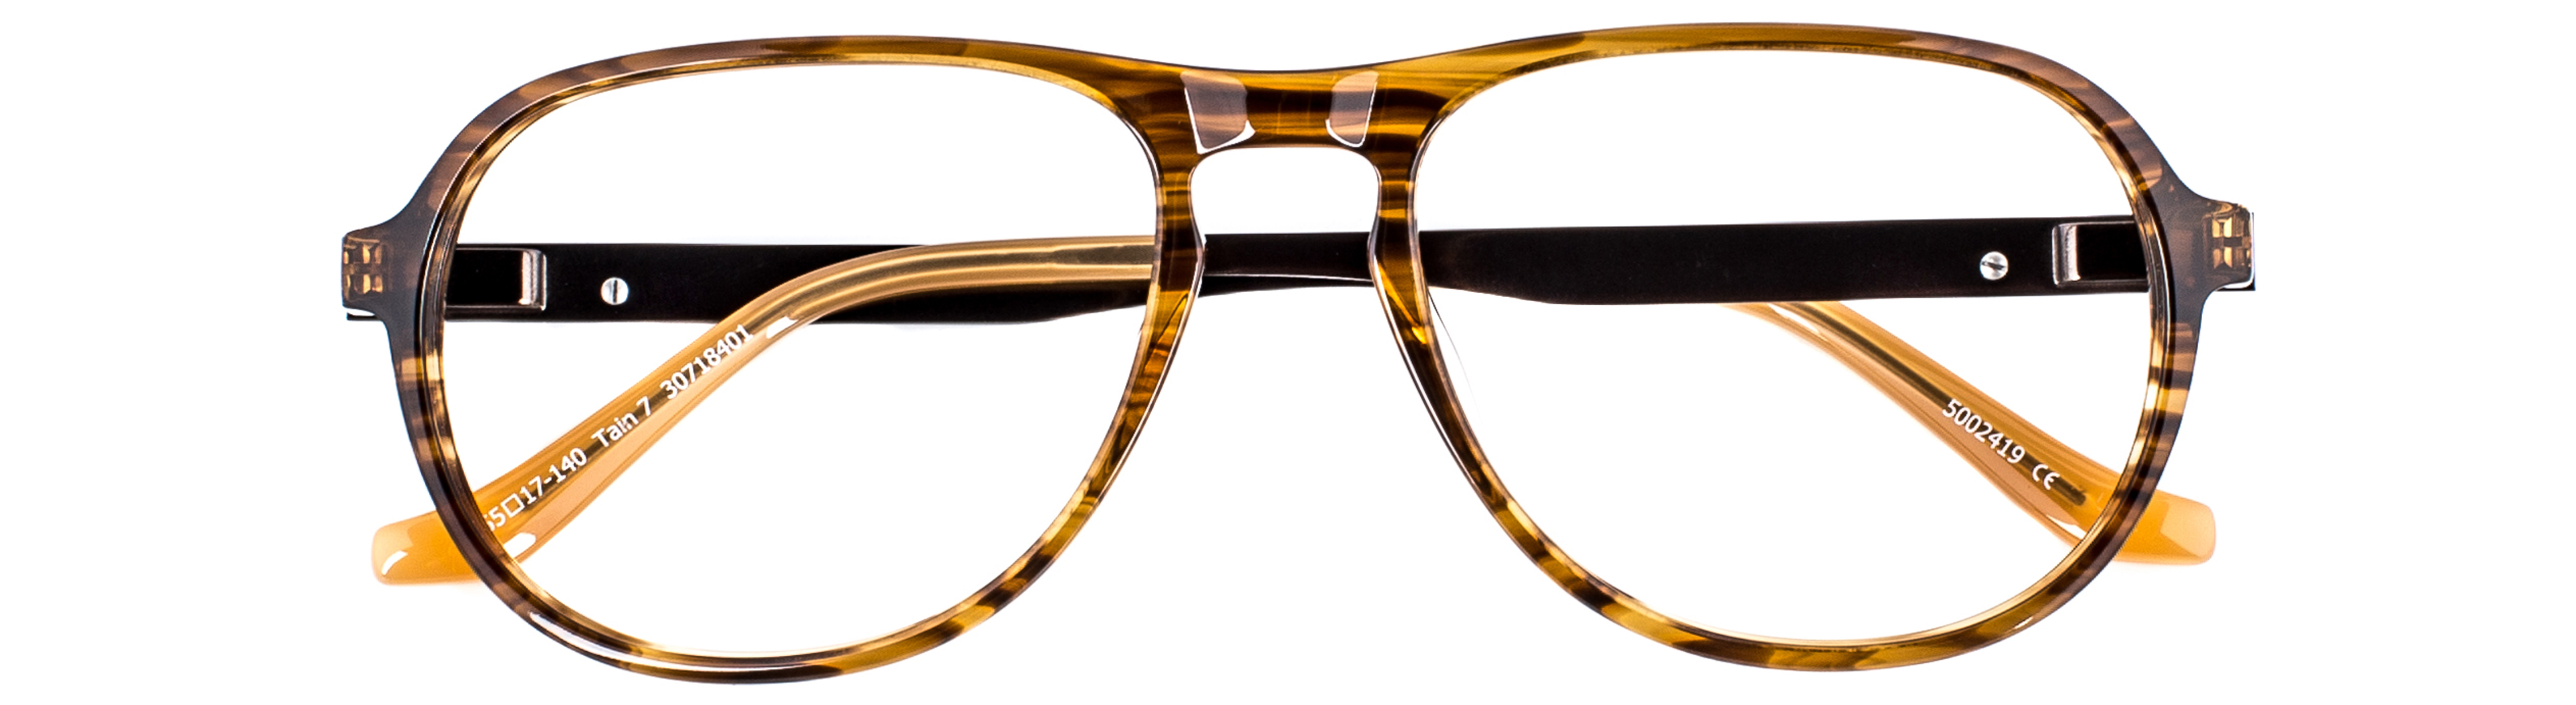 Lyle and Scott Men's Tain 7 Glasses